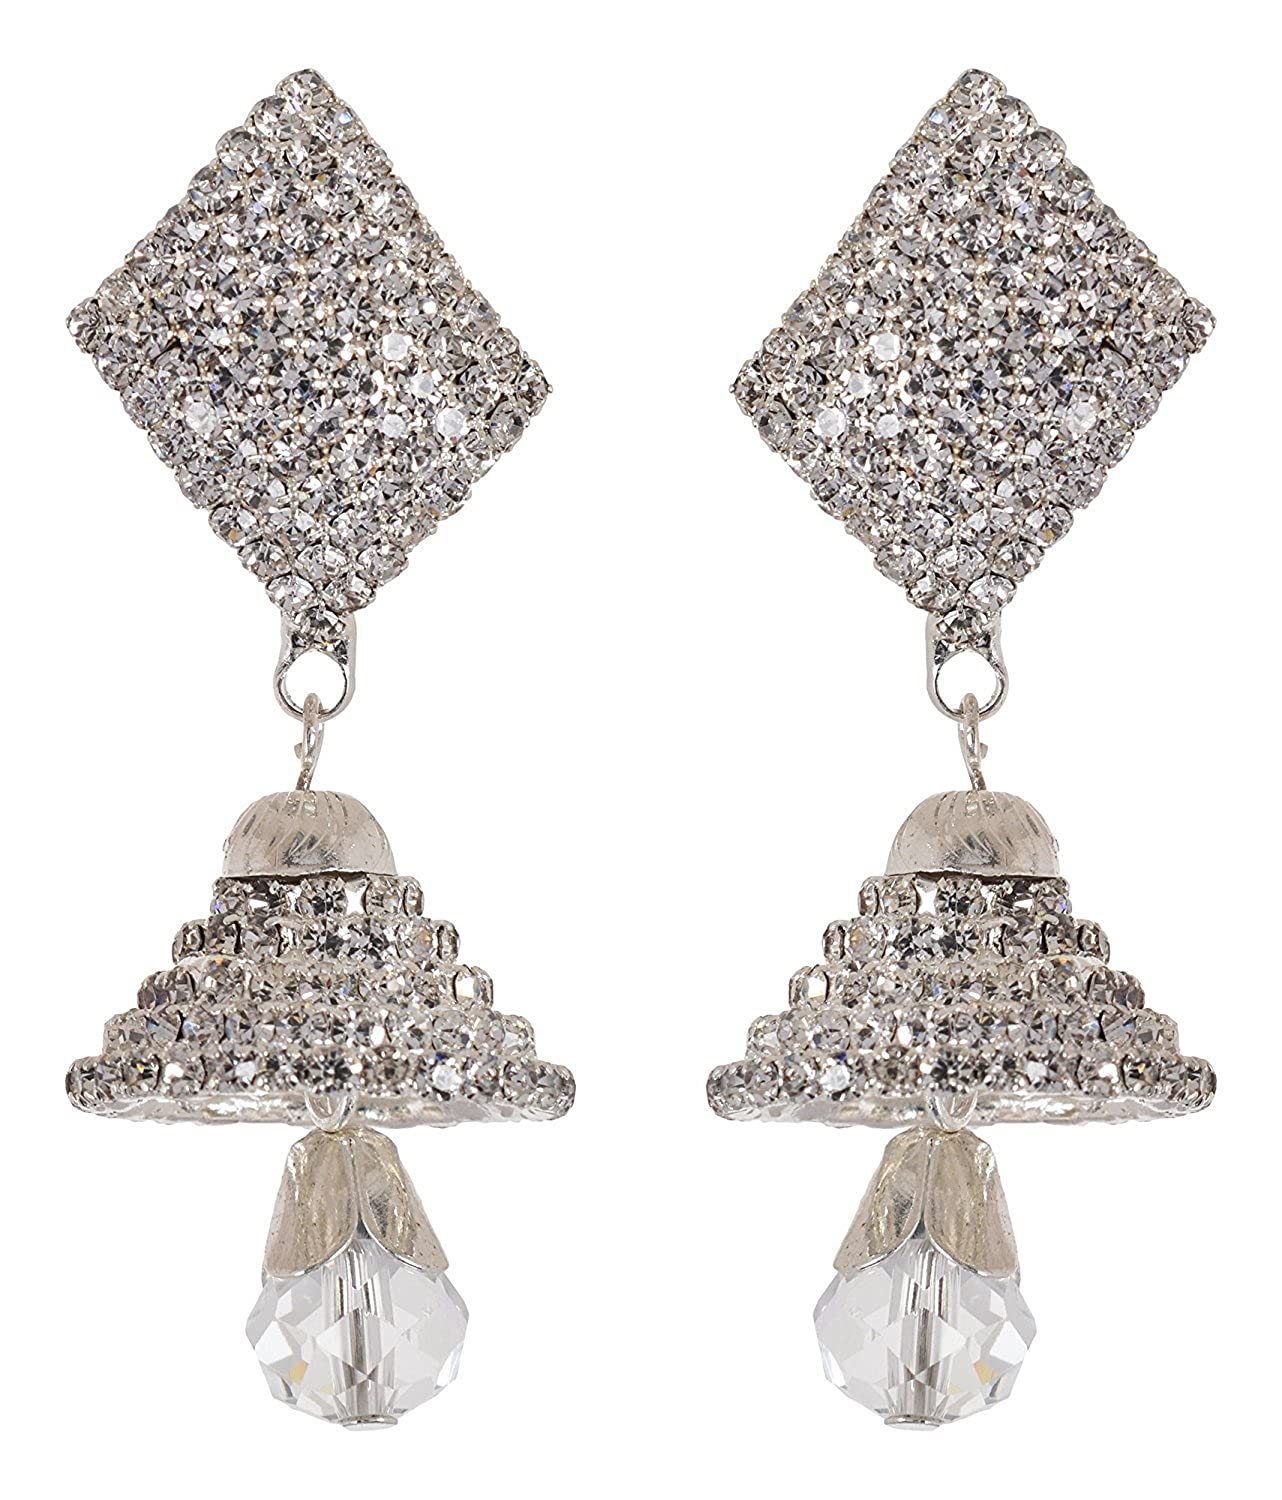 Subharpit Ethnic Complete Crystal Silver Plated Indian Bridal Dangle /& Drop Earrings for Women /& Girls